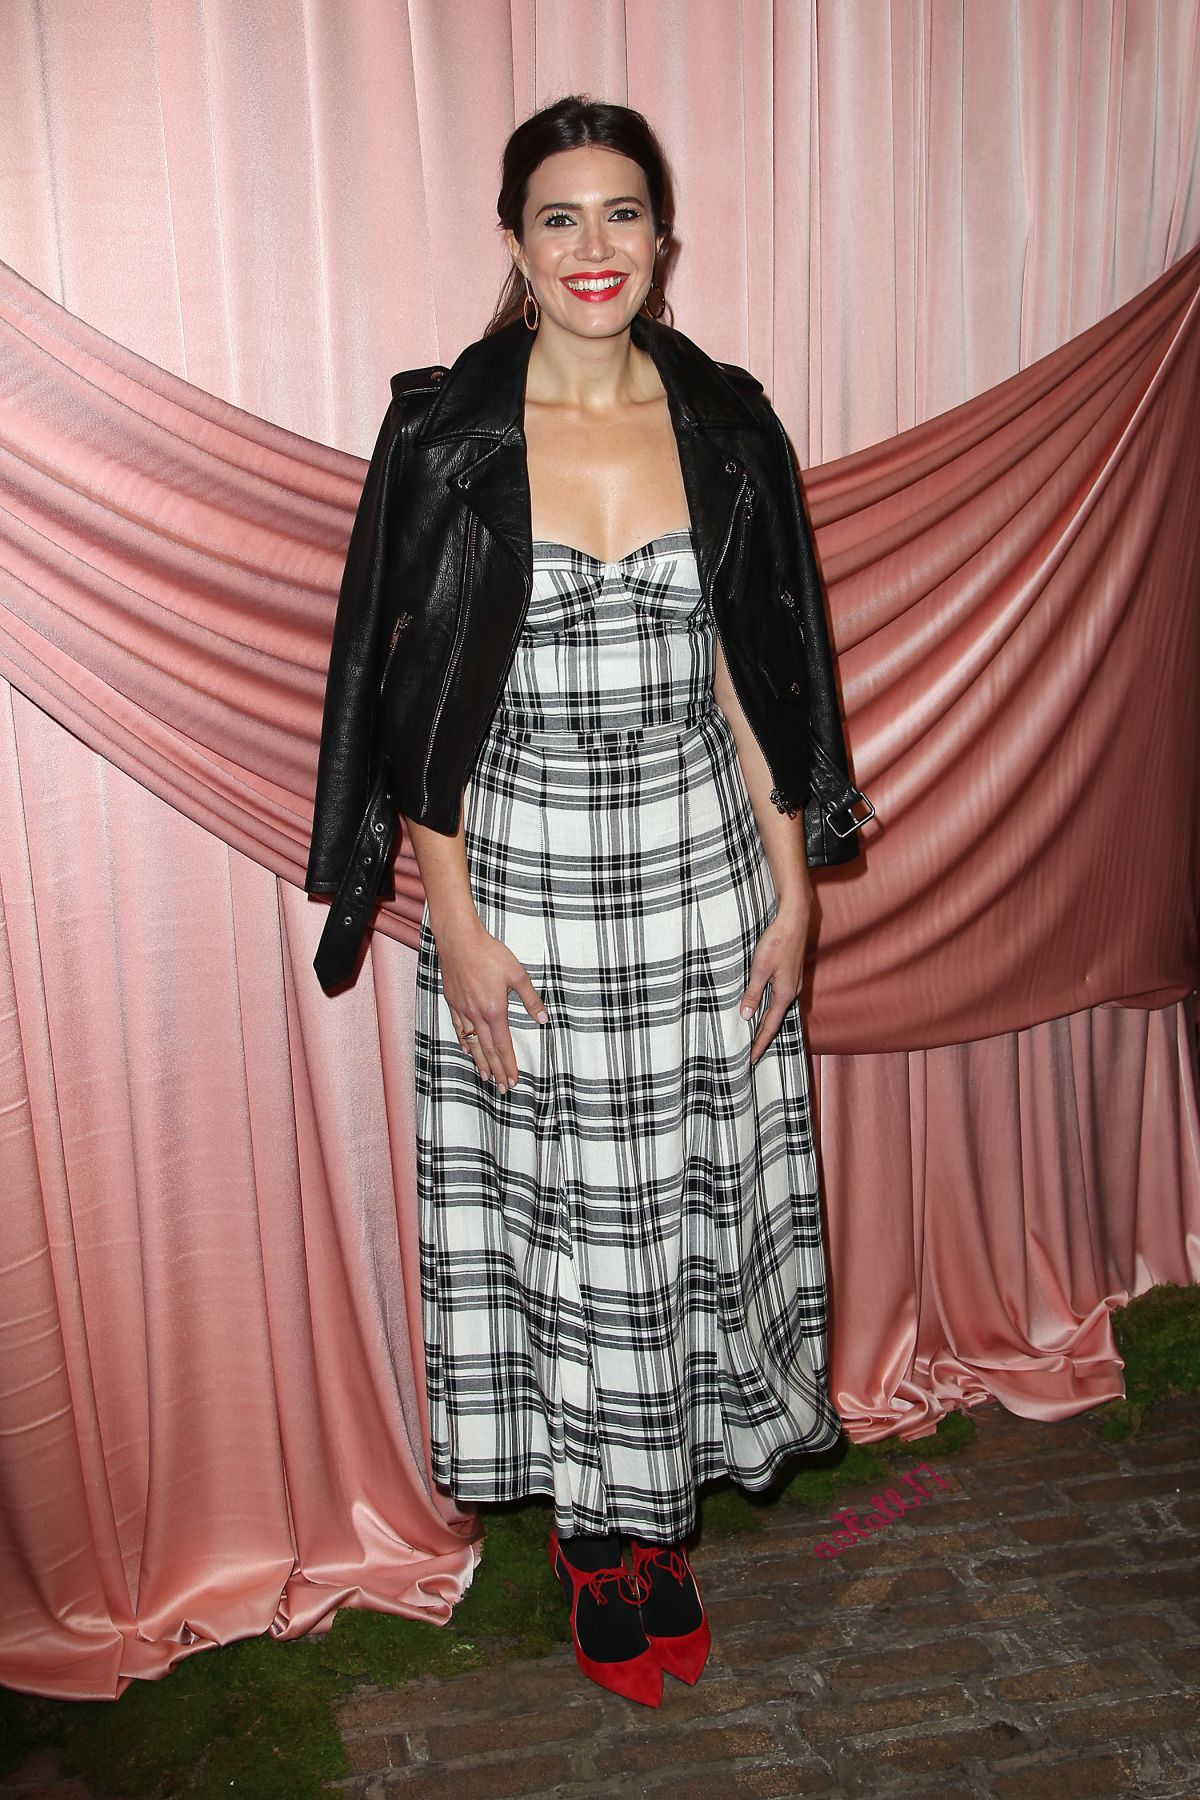 MANDY MOORE at Aice+Olivia by Stacey Bendet Presentation in New York 02/14/2017   mandy-moore-at-aice-olivia-by-stacey-bendet-presentation-in-new-york-02-14-2017_5